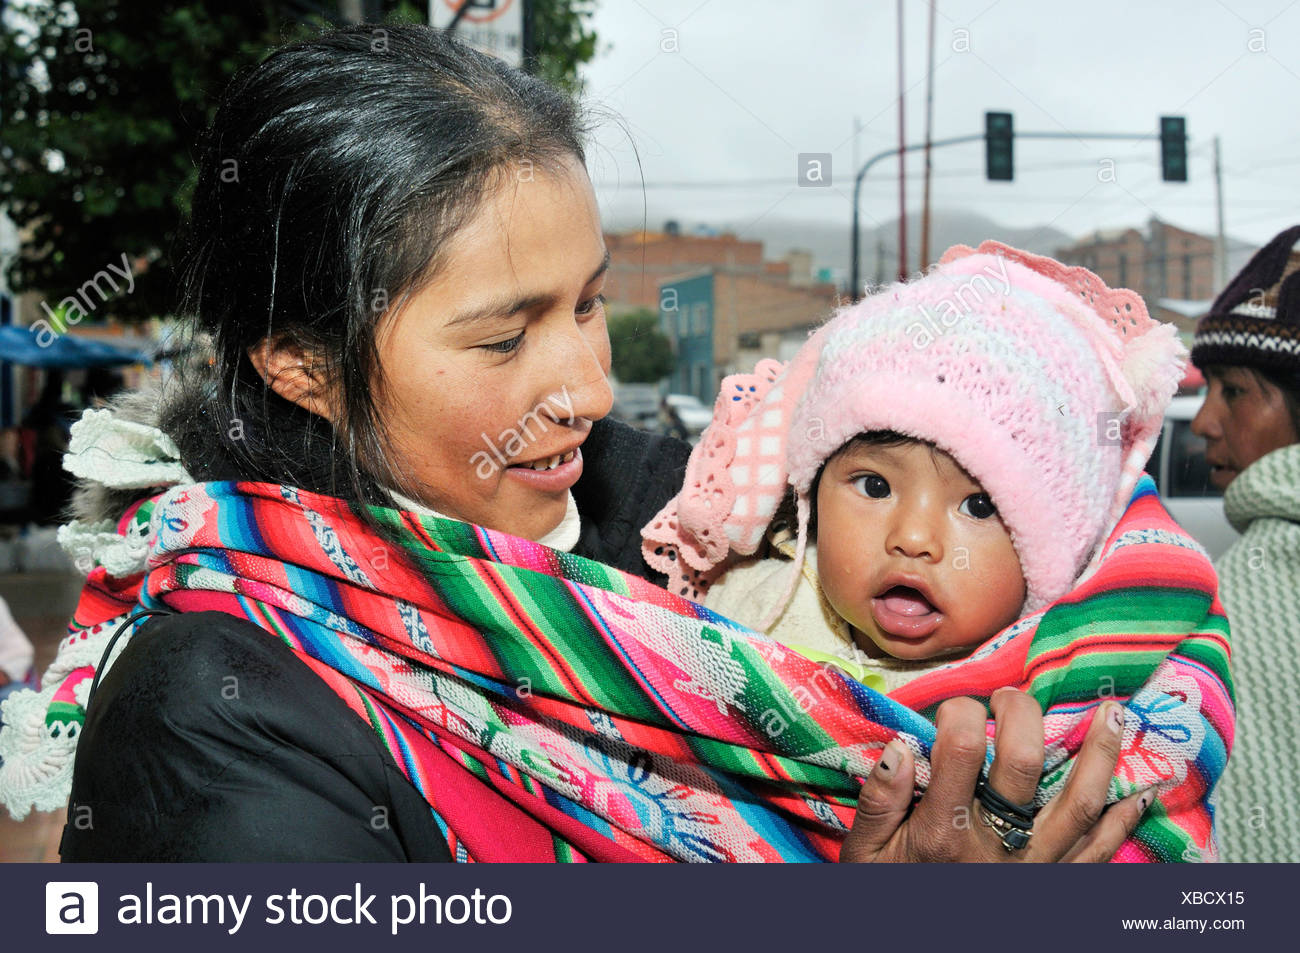 Young mother with baby in a baby-sling, Bolivian Altiplano highlands, Departamento Oruro, Bolivia, South America - Stock Image